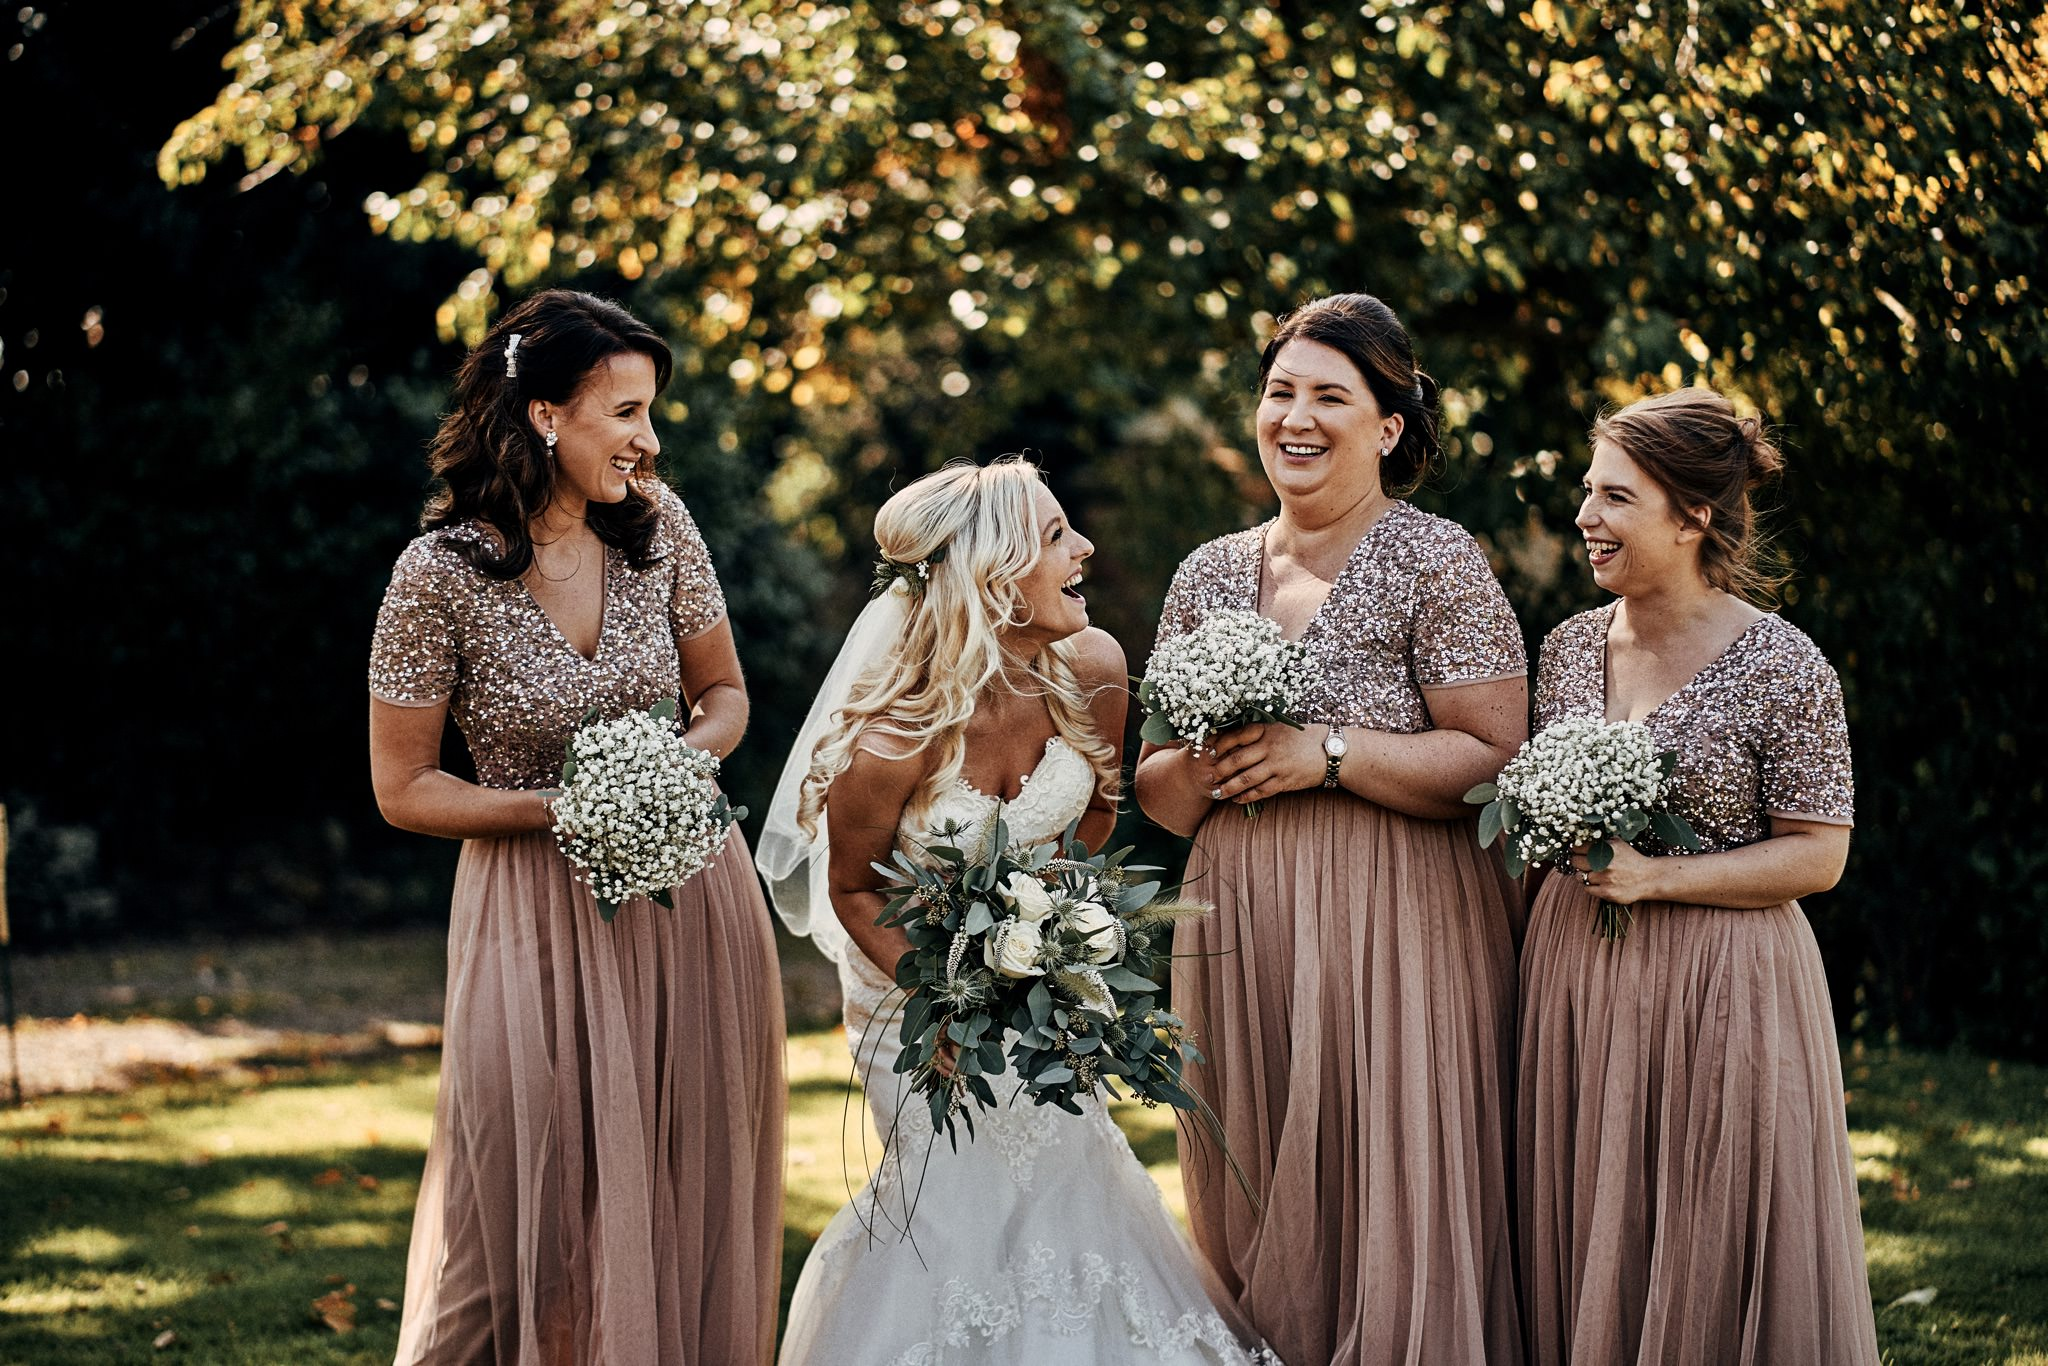 Bridal party share a joke during the formal photos